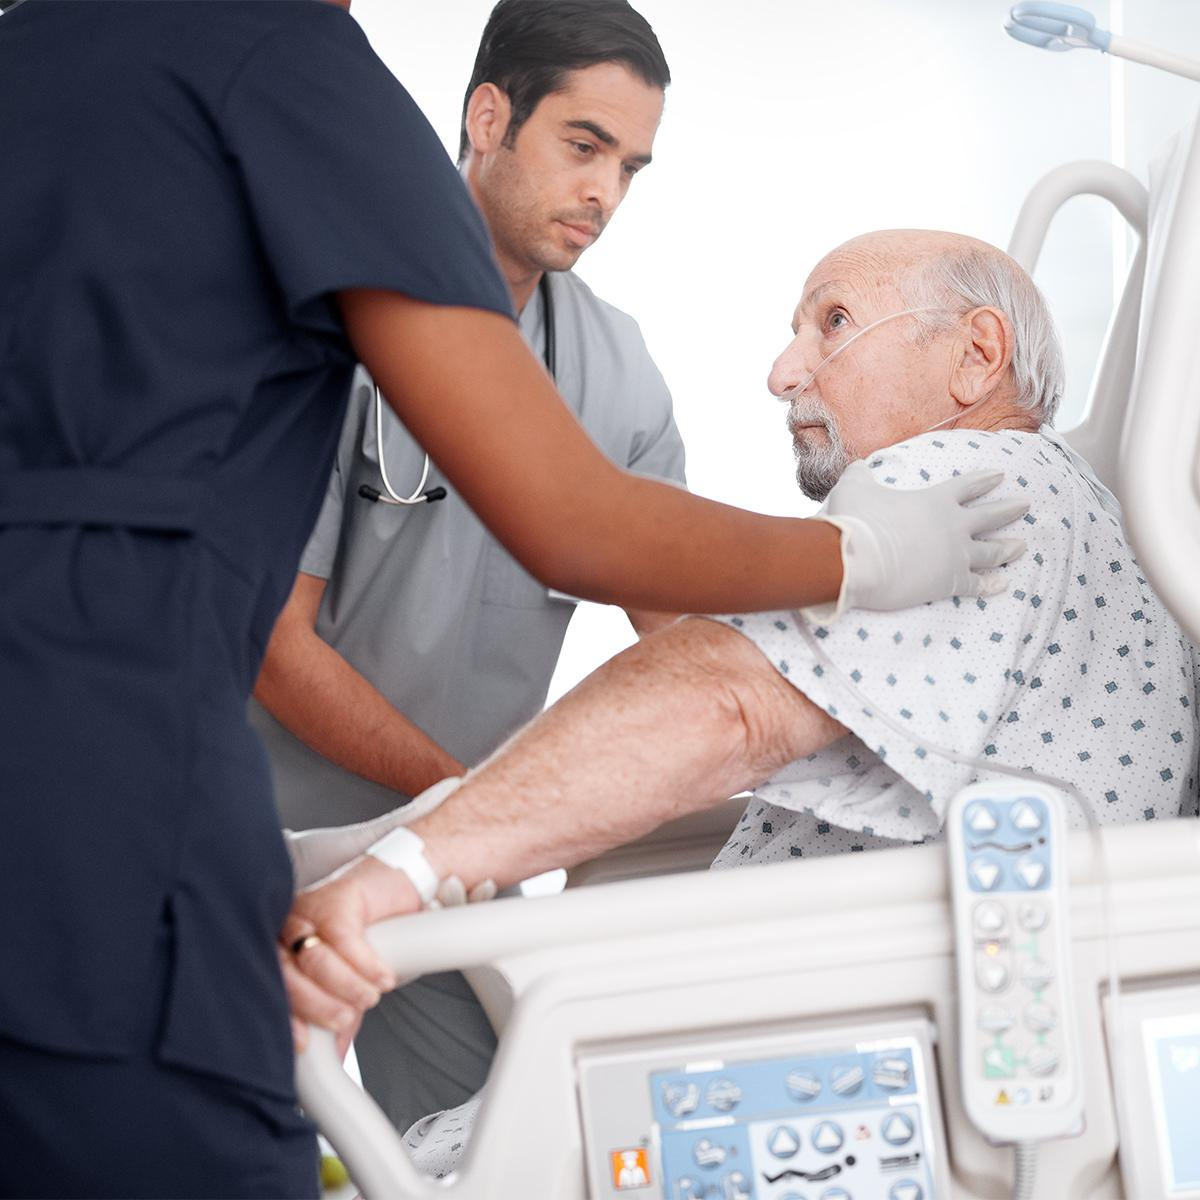 Two clinicians attending to an older patient sitting up in a hospital bed